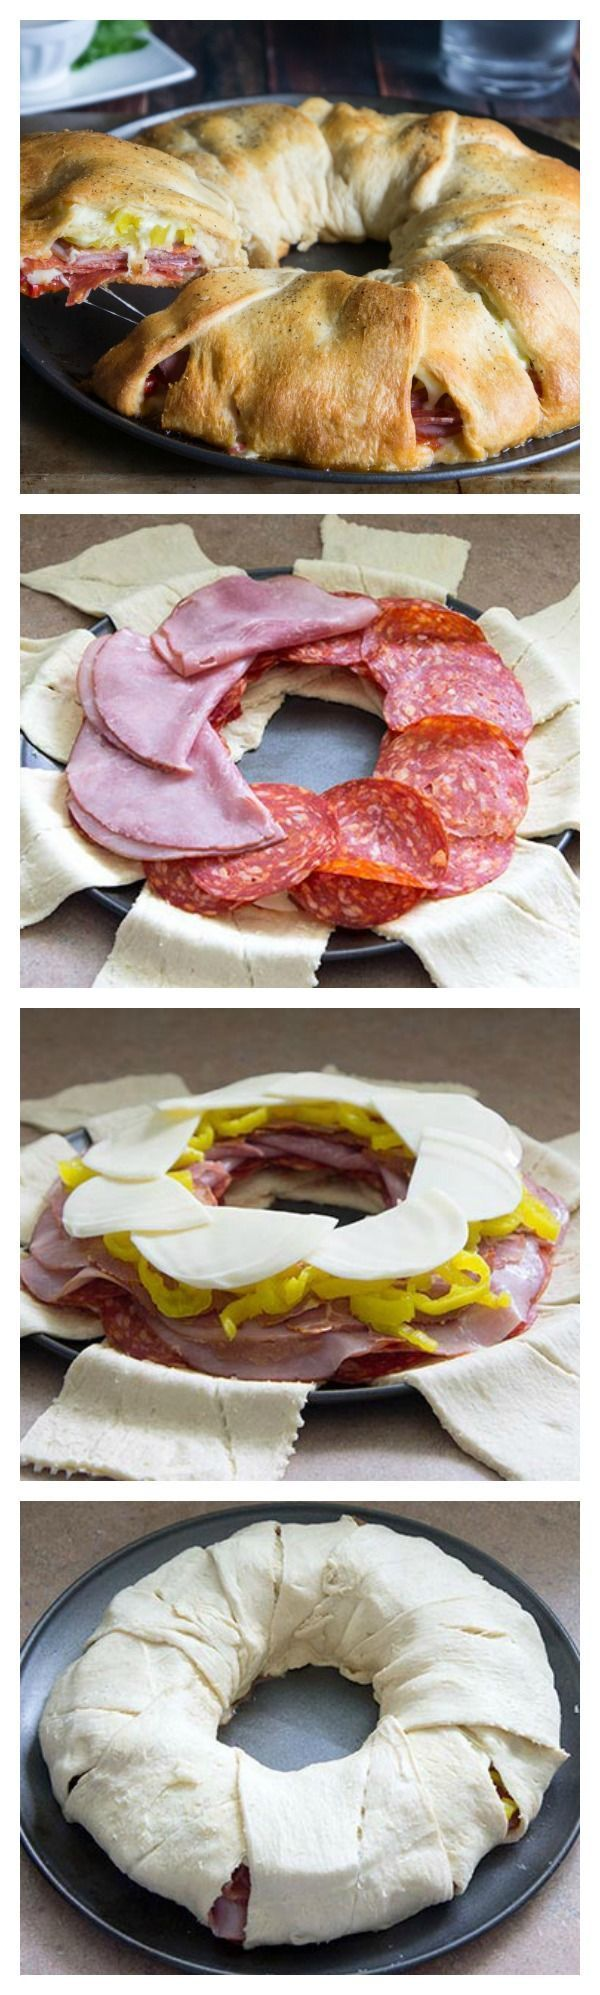 Italian Crescent Ring - a favorite sandwich combo made with crescents!